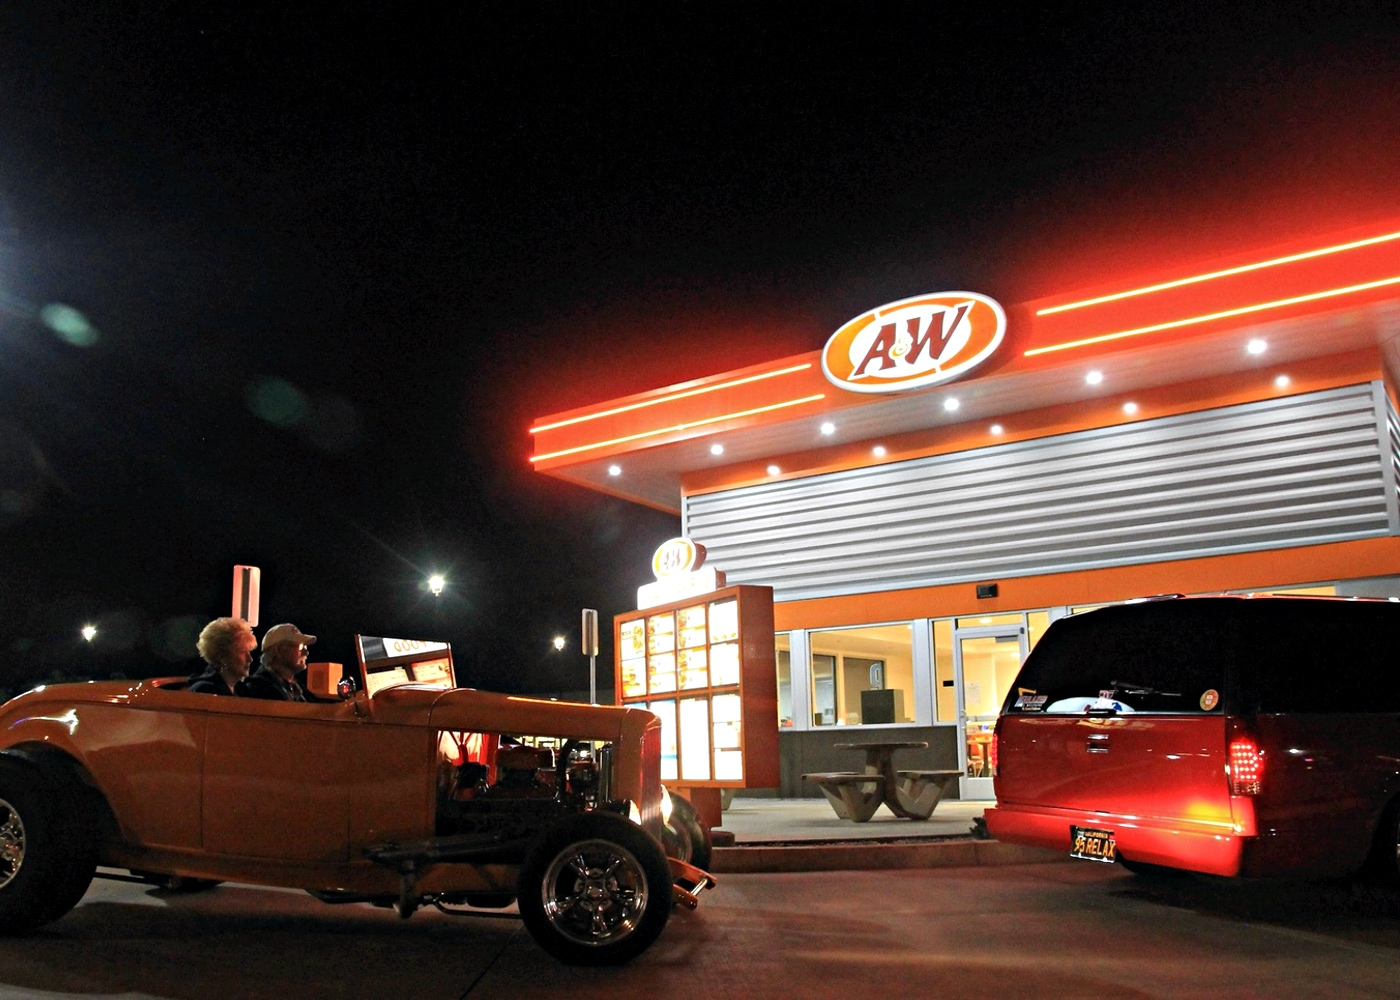 Two cars in A&W Restaurant drive-thru during the nighttime.